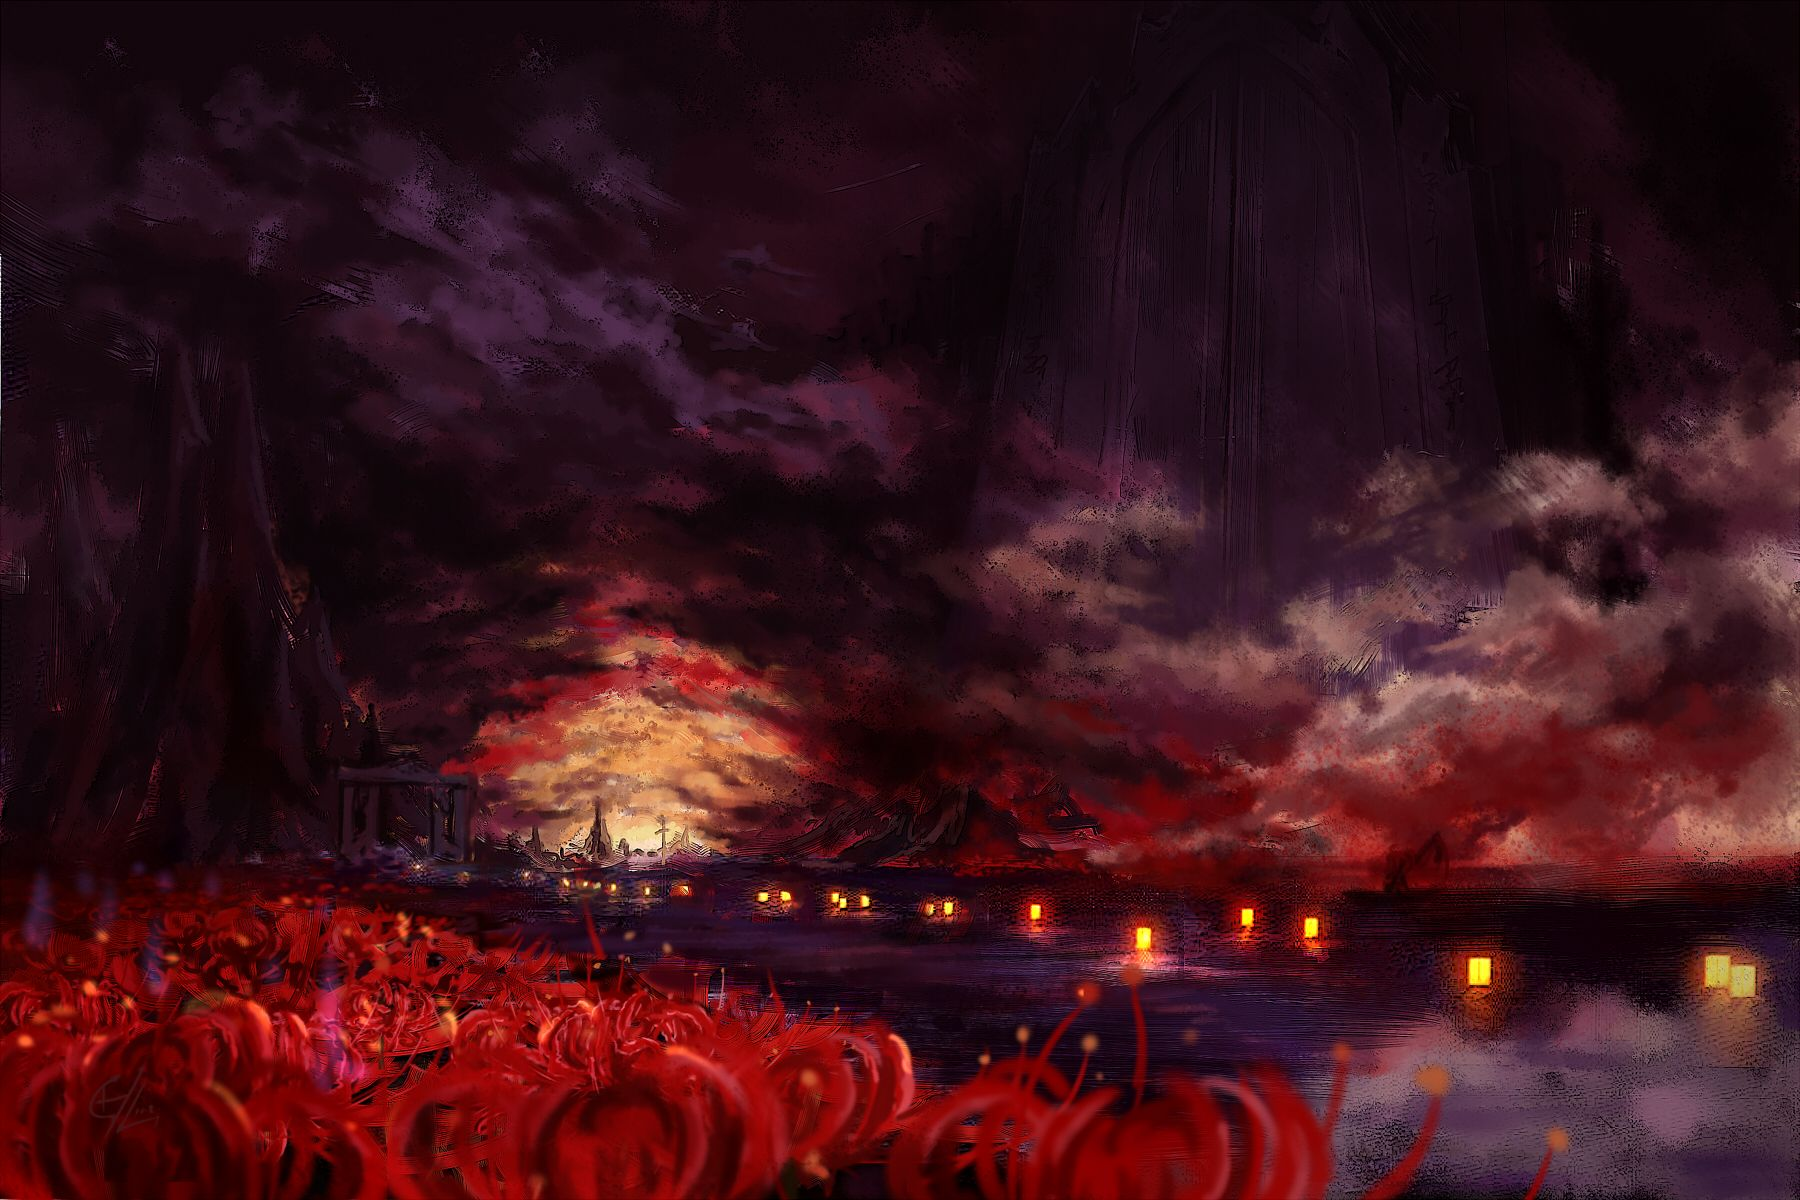 Styx River Red Spider Lily Art Background Anime Wallpaper